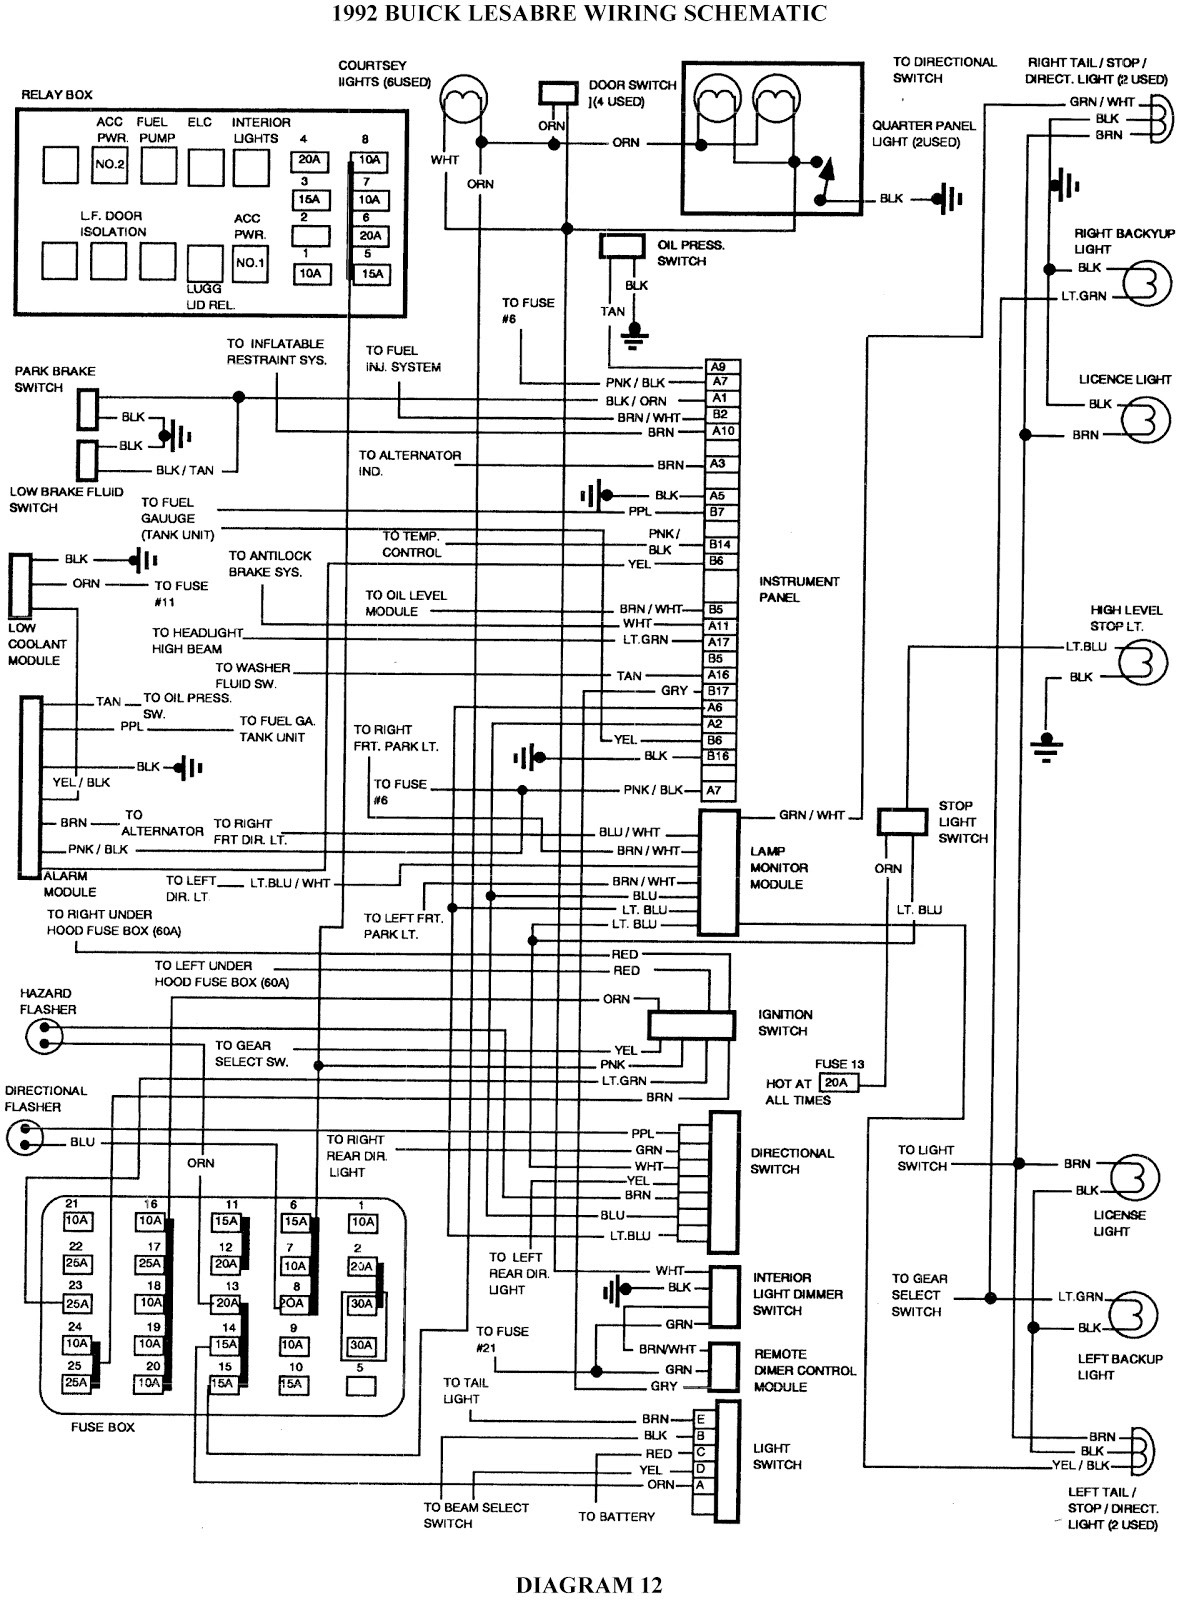 1998 oldsmobile 88 fuse box diagram wiring schematic 1998 oldsmobile intrigue fuse box diagram 1992 buick lesabre schematic wiring diagrams schematic